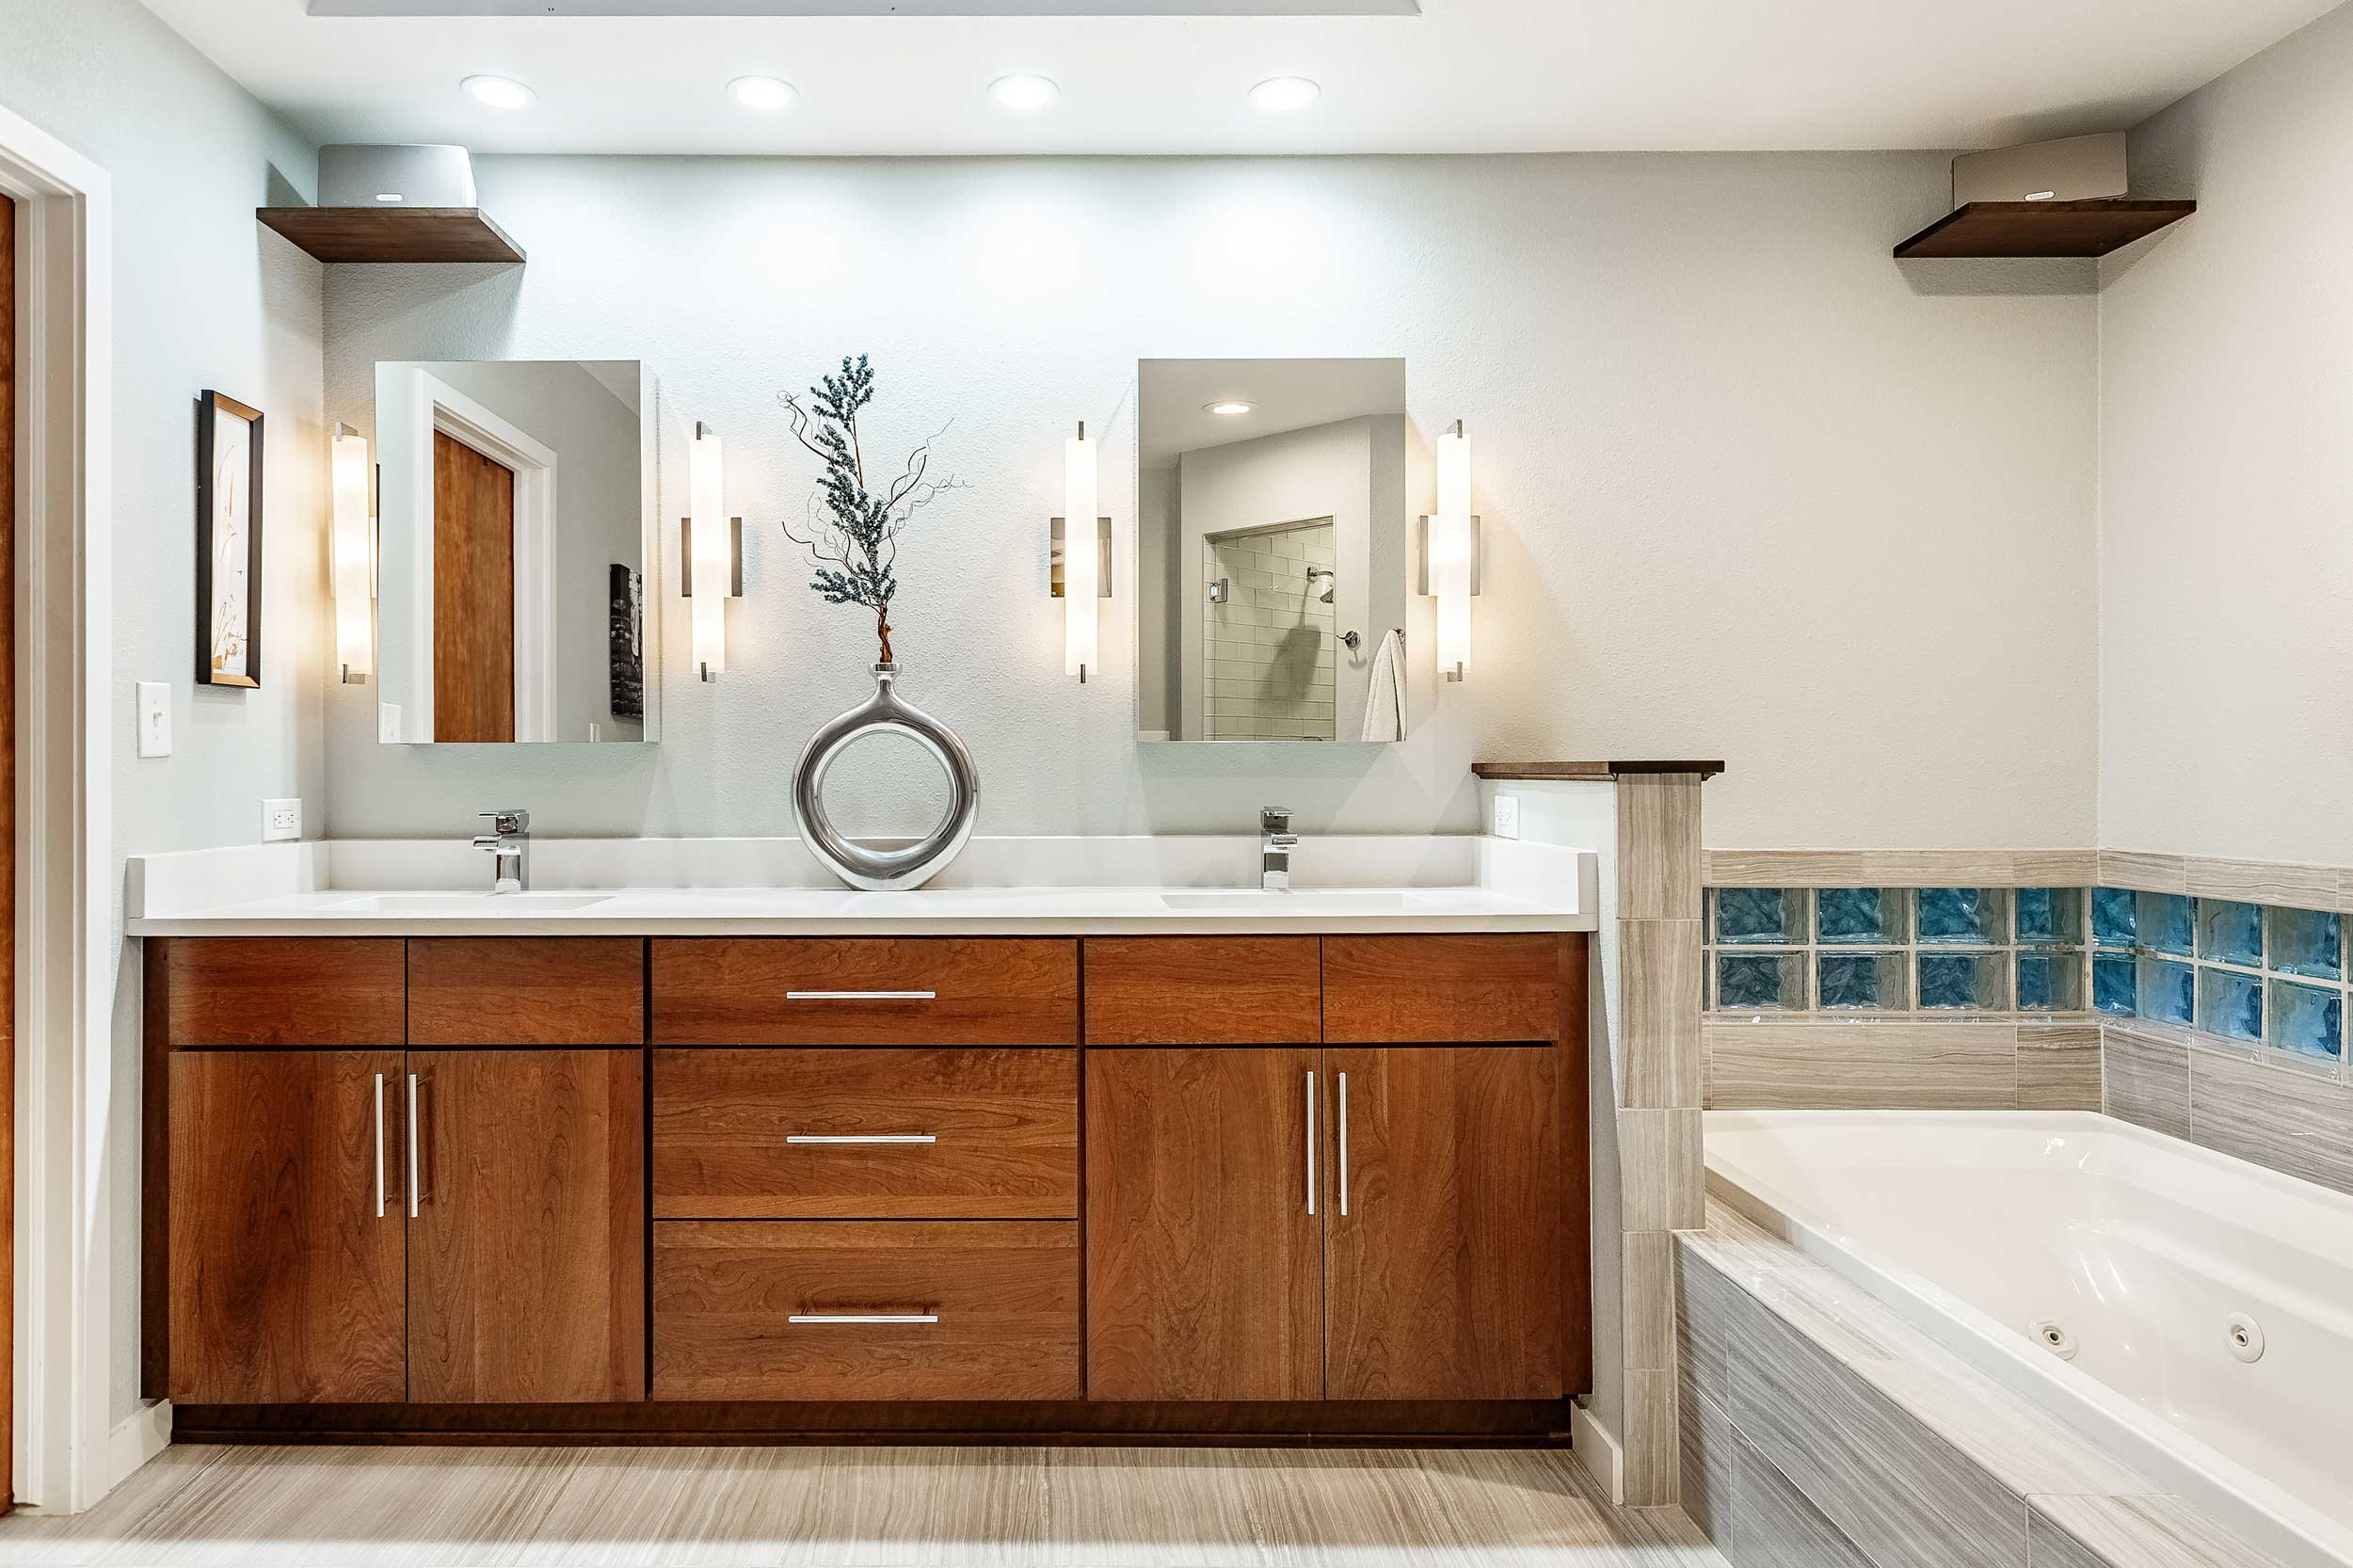 DutchCreekMasterBath-2.jpg